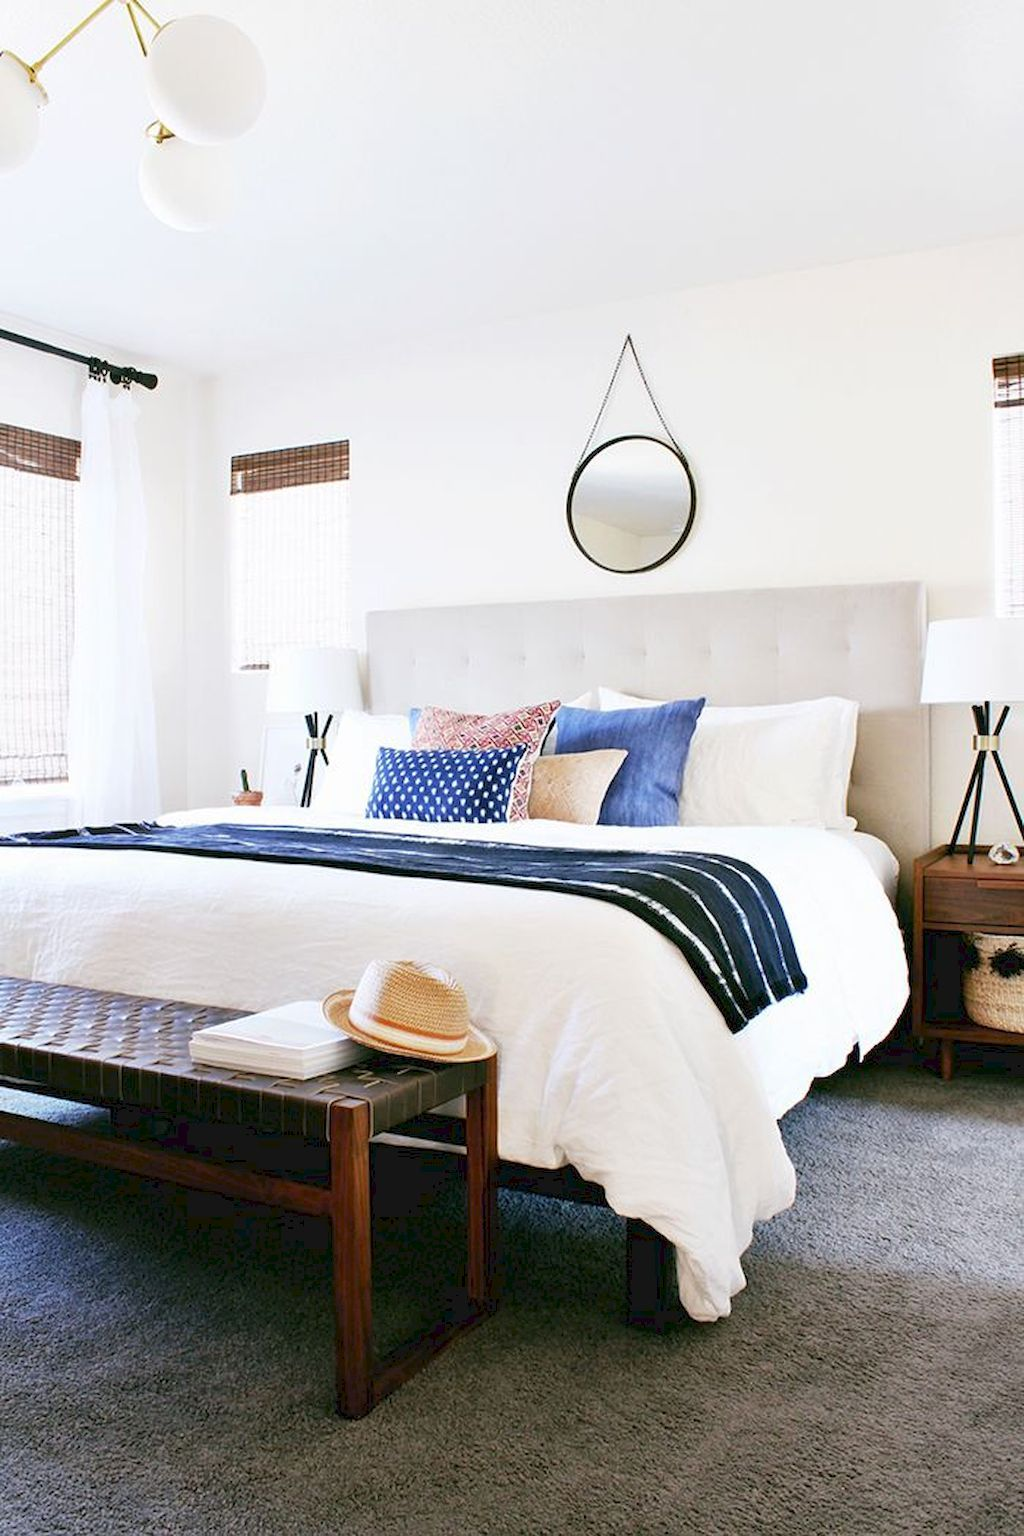 60 Cool Eclectic Master Bedroom Decor Ideas And Remodel | Pinterest Master Bedroom Decorating Ideas Ecclectic on unique decorating ideas, egyptian decorating ideas, classic decorating ideas, pizza decorating ideas, italian decorating ideas, contemporary decorating ideas, art decorating ideas, simple decorating ideas, fun decorating ideas, pagan decorating ideas,